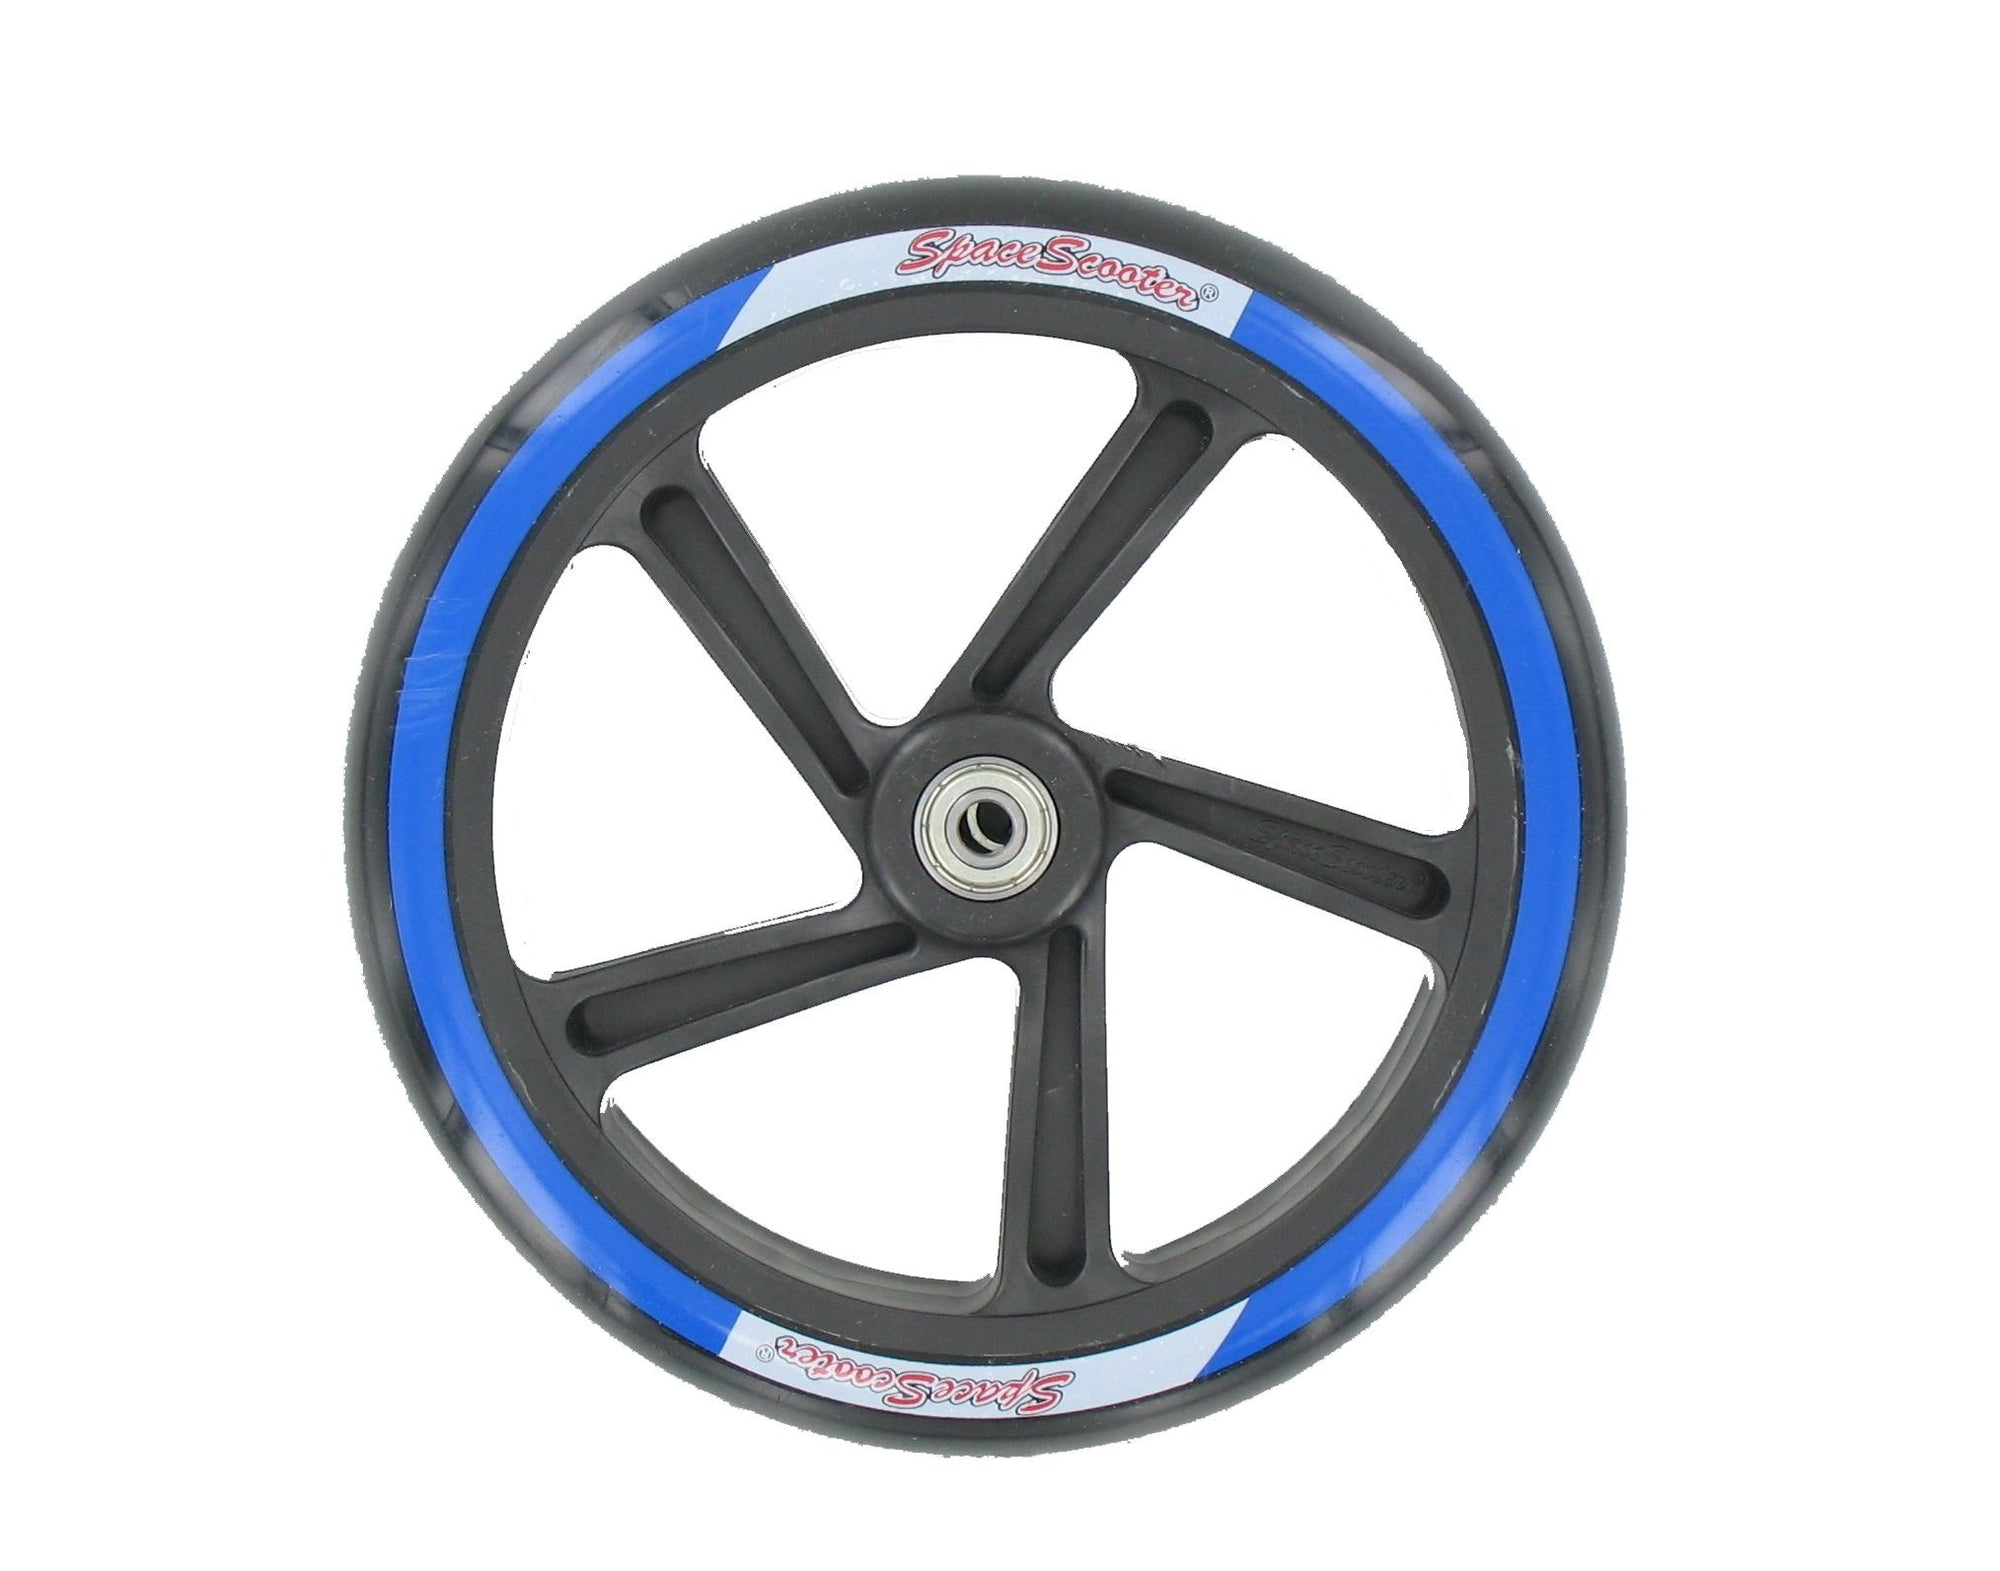 Space Scooter (x580) - Front wheel, various colors (including bearings)